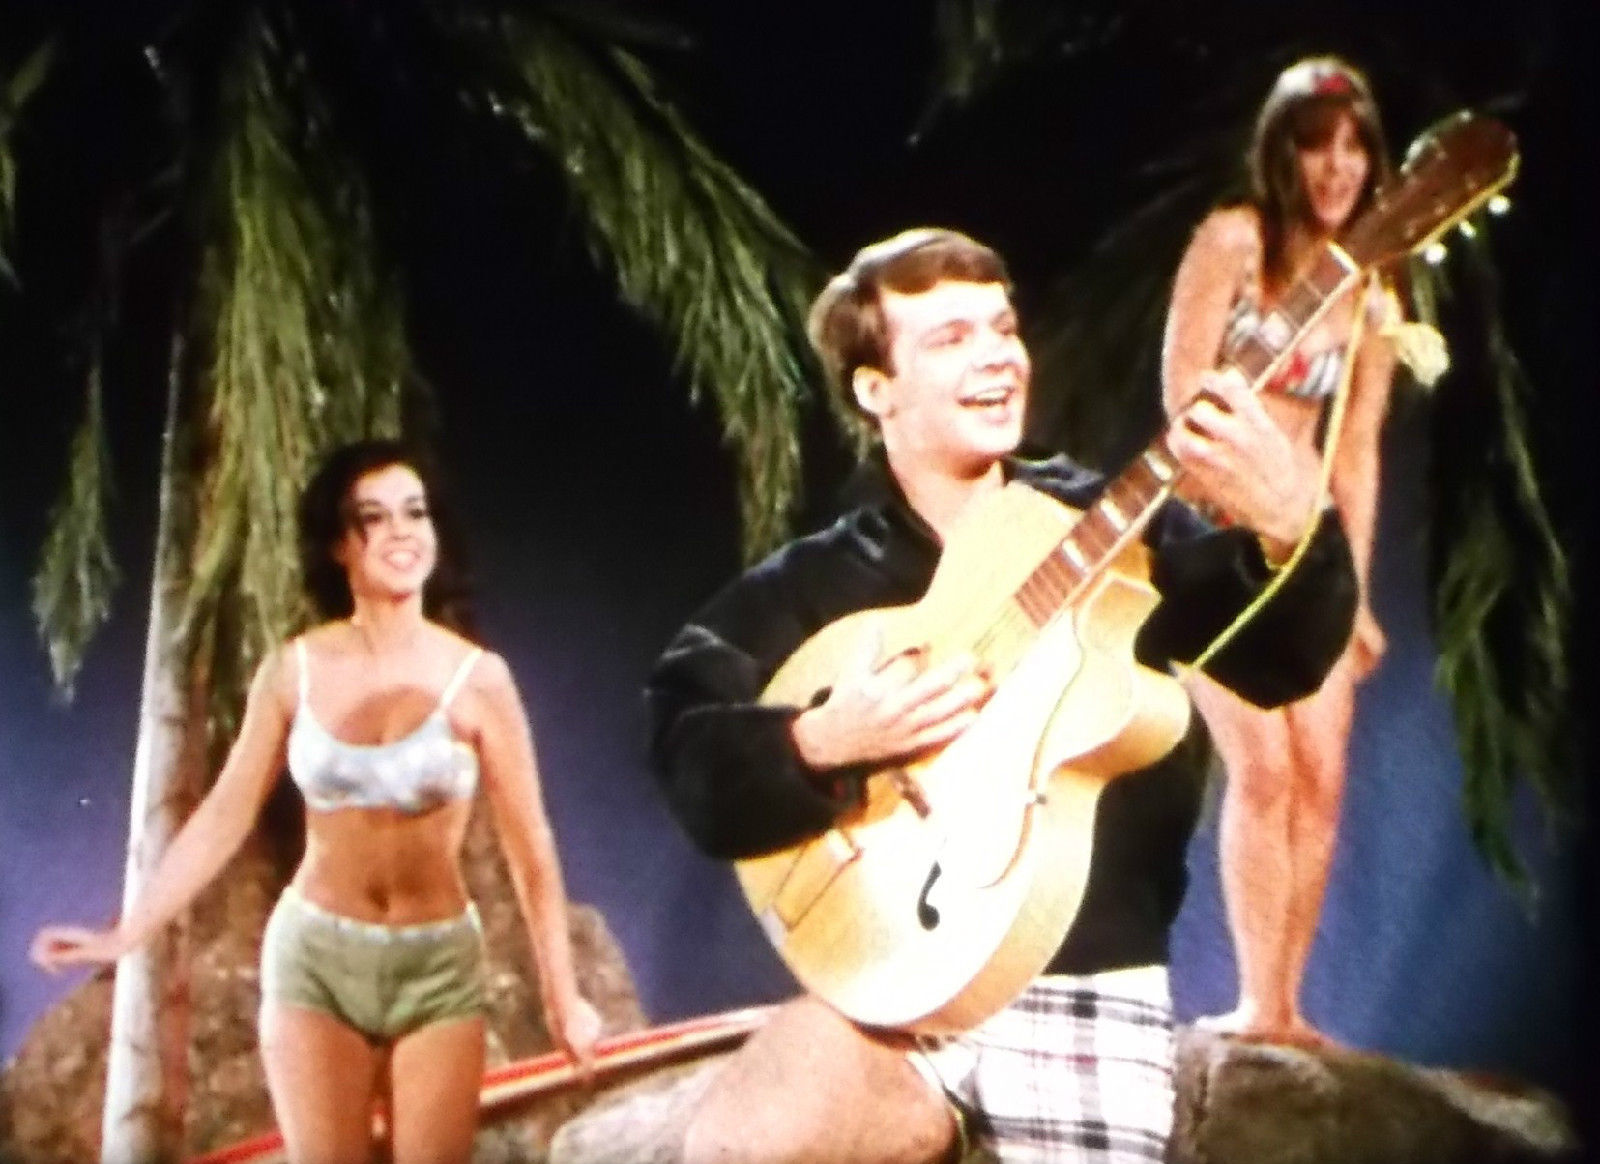 SCOPITONE FILM - THE NIGHT HAS A THOUSAND EYES - Bobby Vee - 16mm - 1960's #1